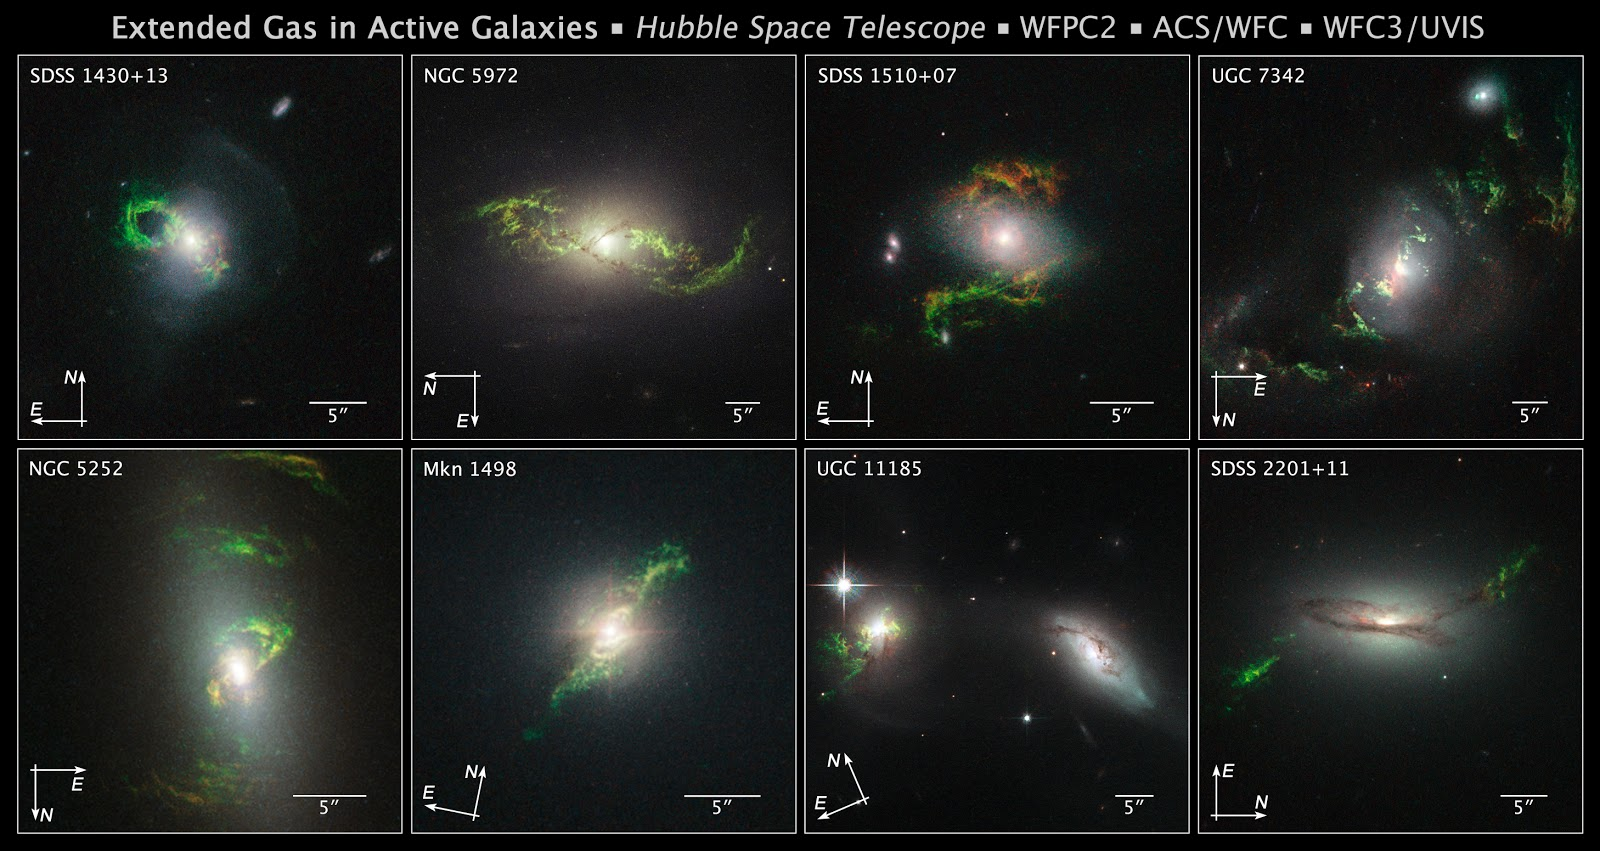 Hubble finds Phantom Objects near Dead Quasars